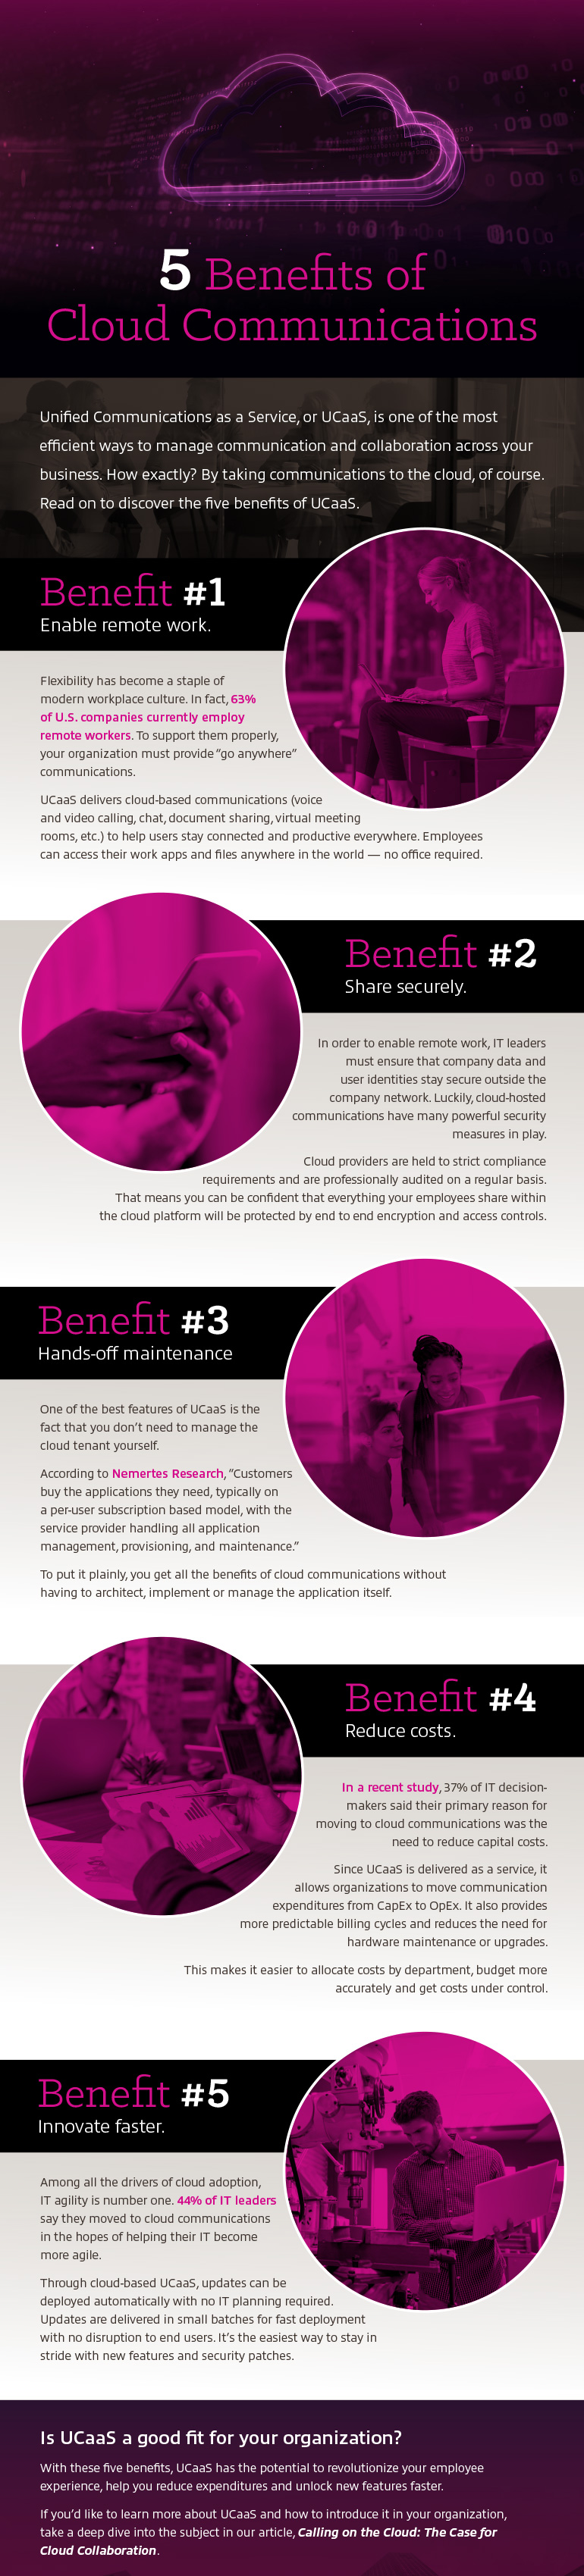 First part of 5 Benefits Of Cloud Communications, Why UCaaS? infographic as outlined from below